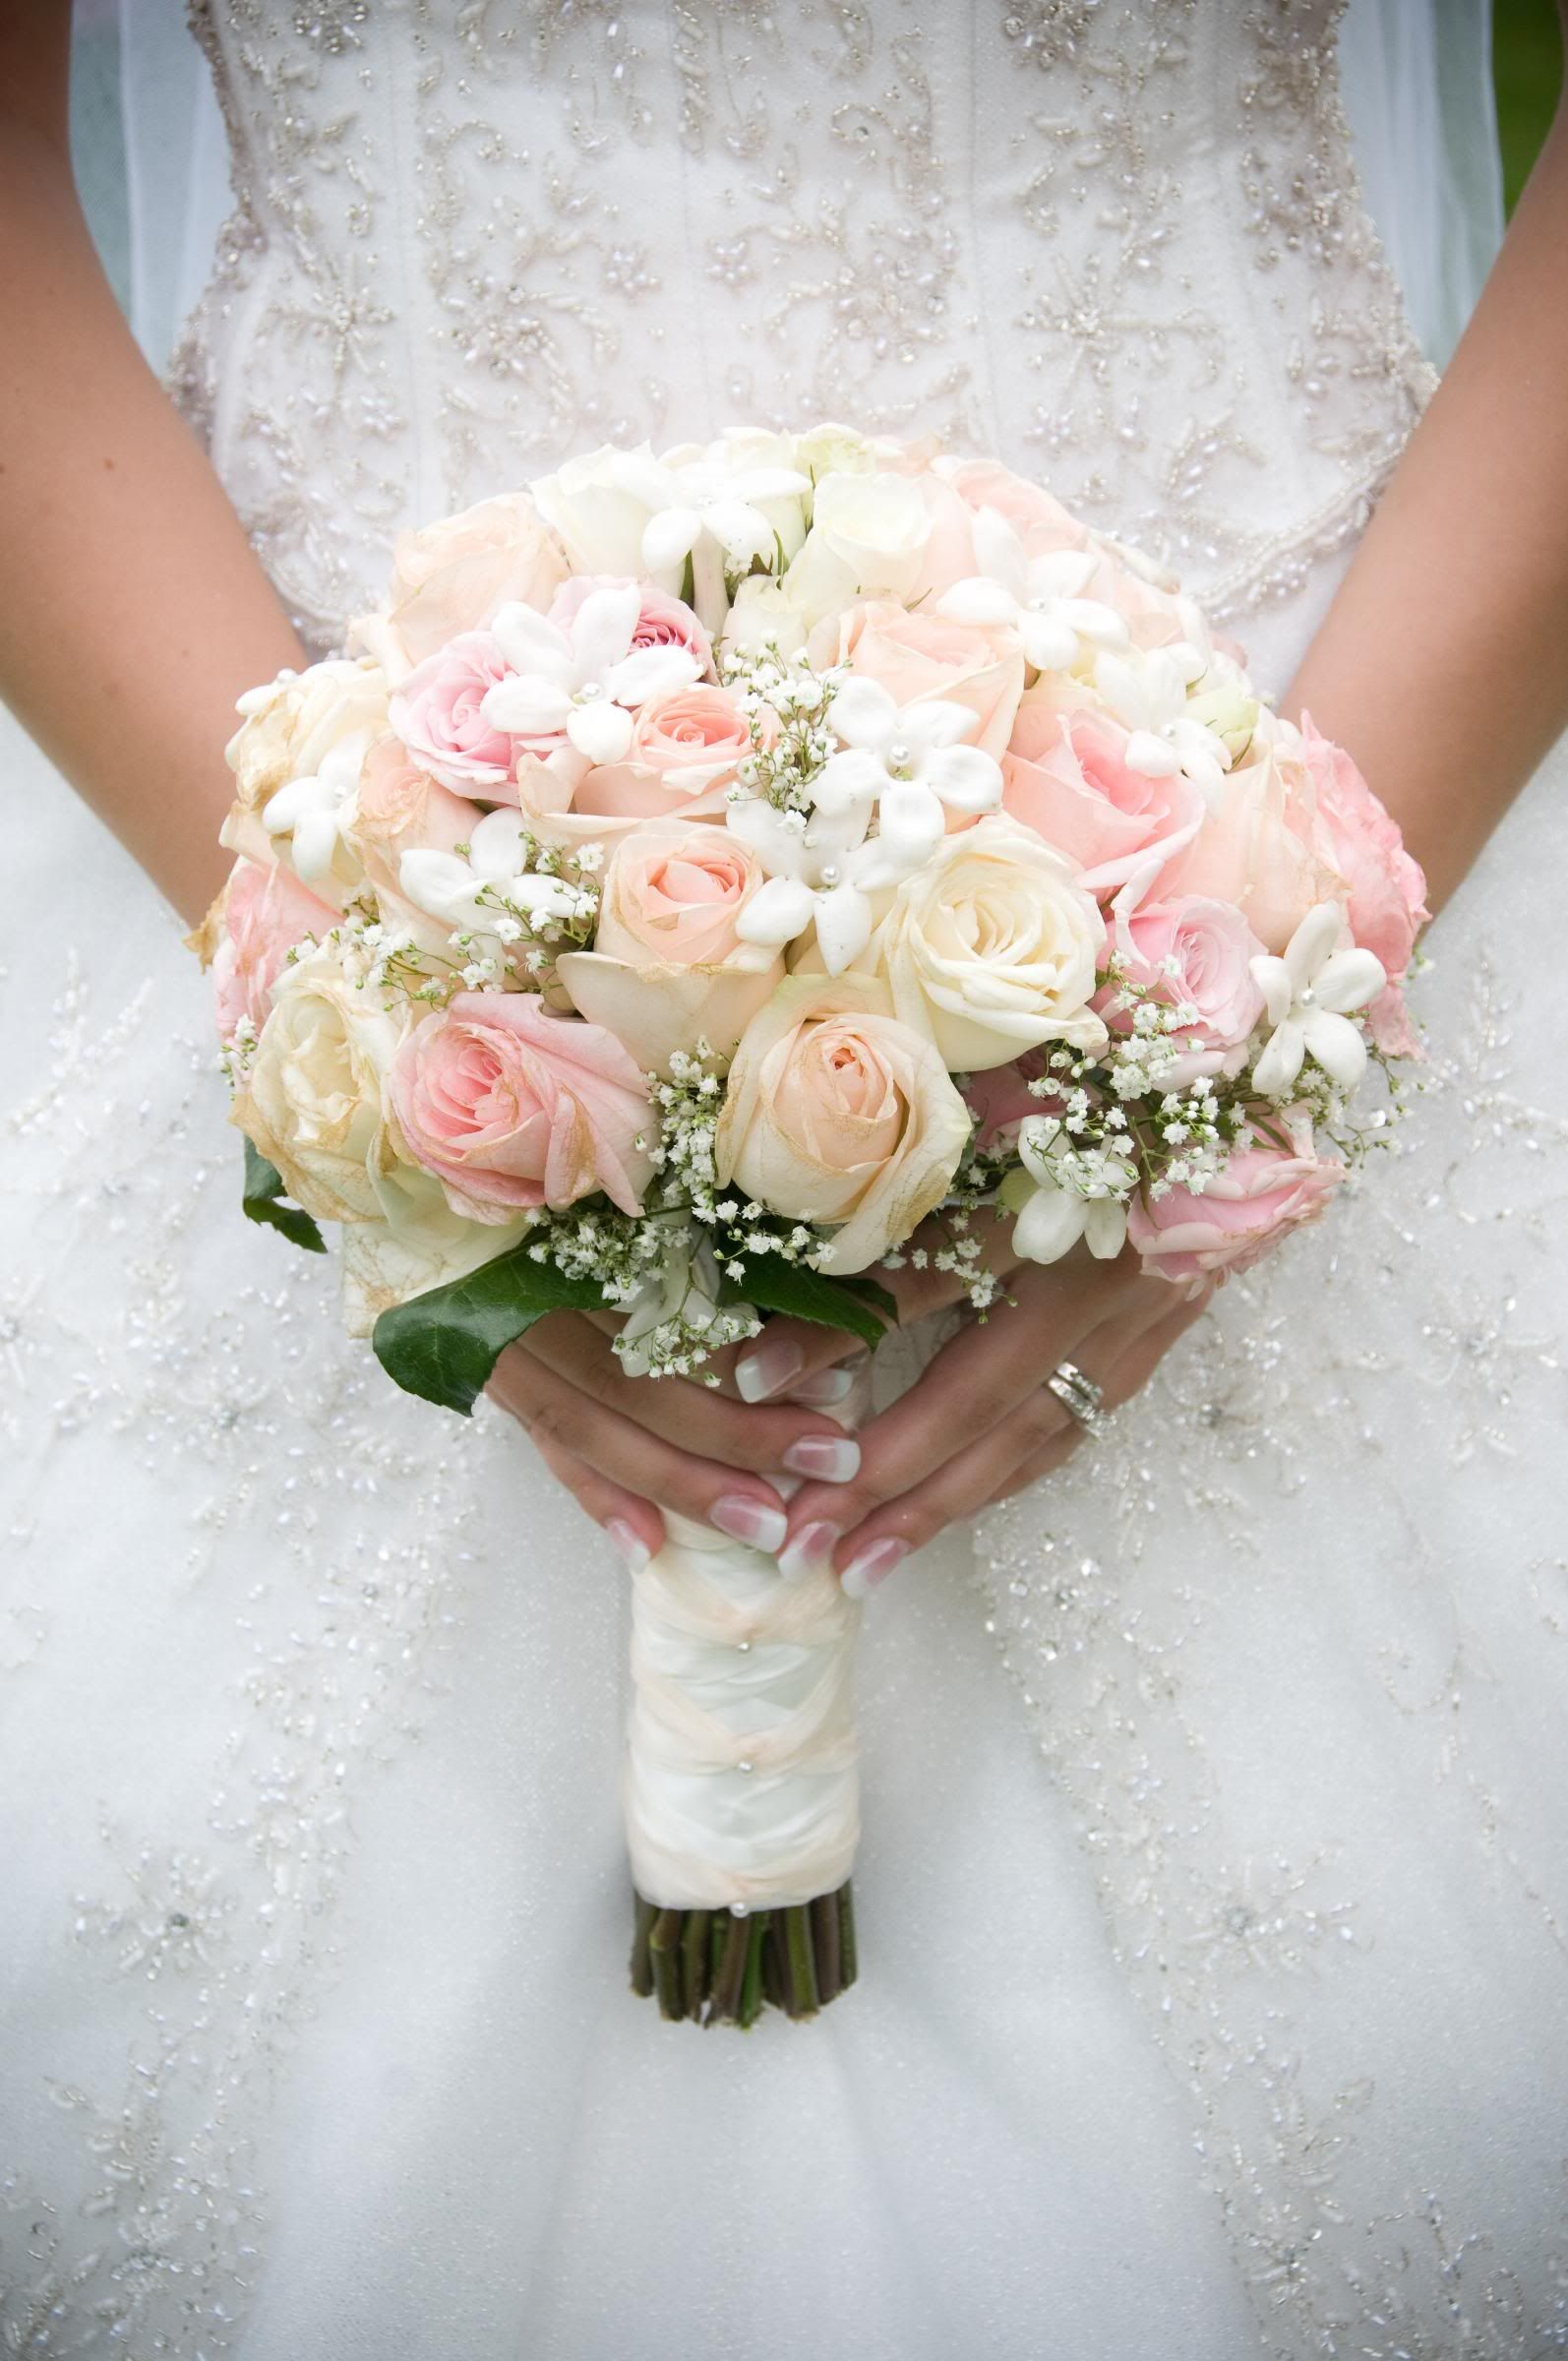 Pink and white roses bridal bouquet wedding bouquet pinterest pink and white roses bridal bouquet izmirmasajfo